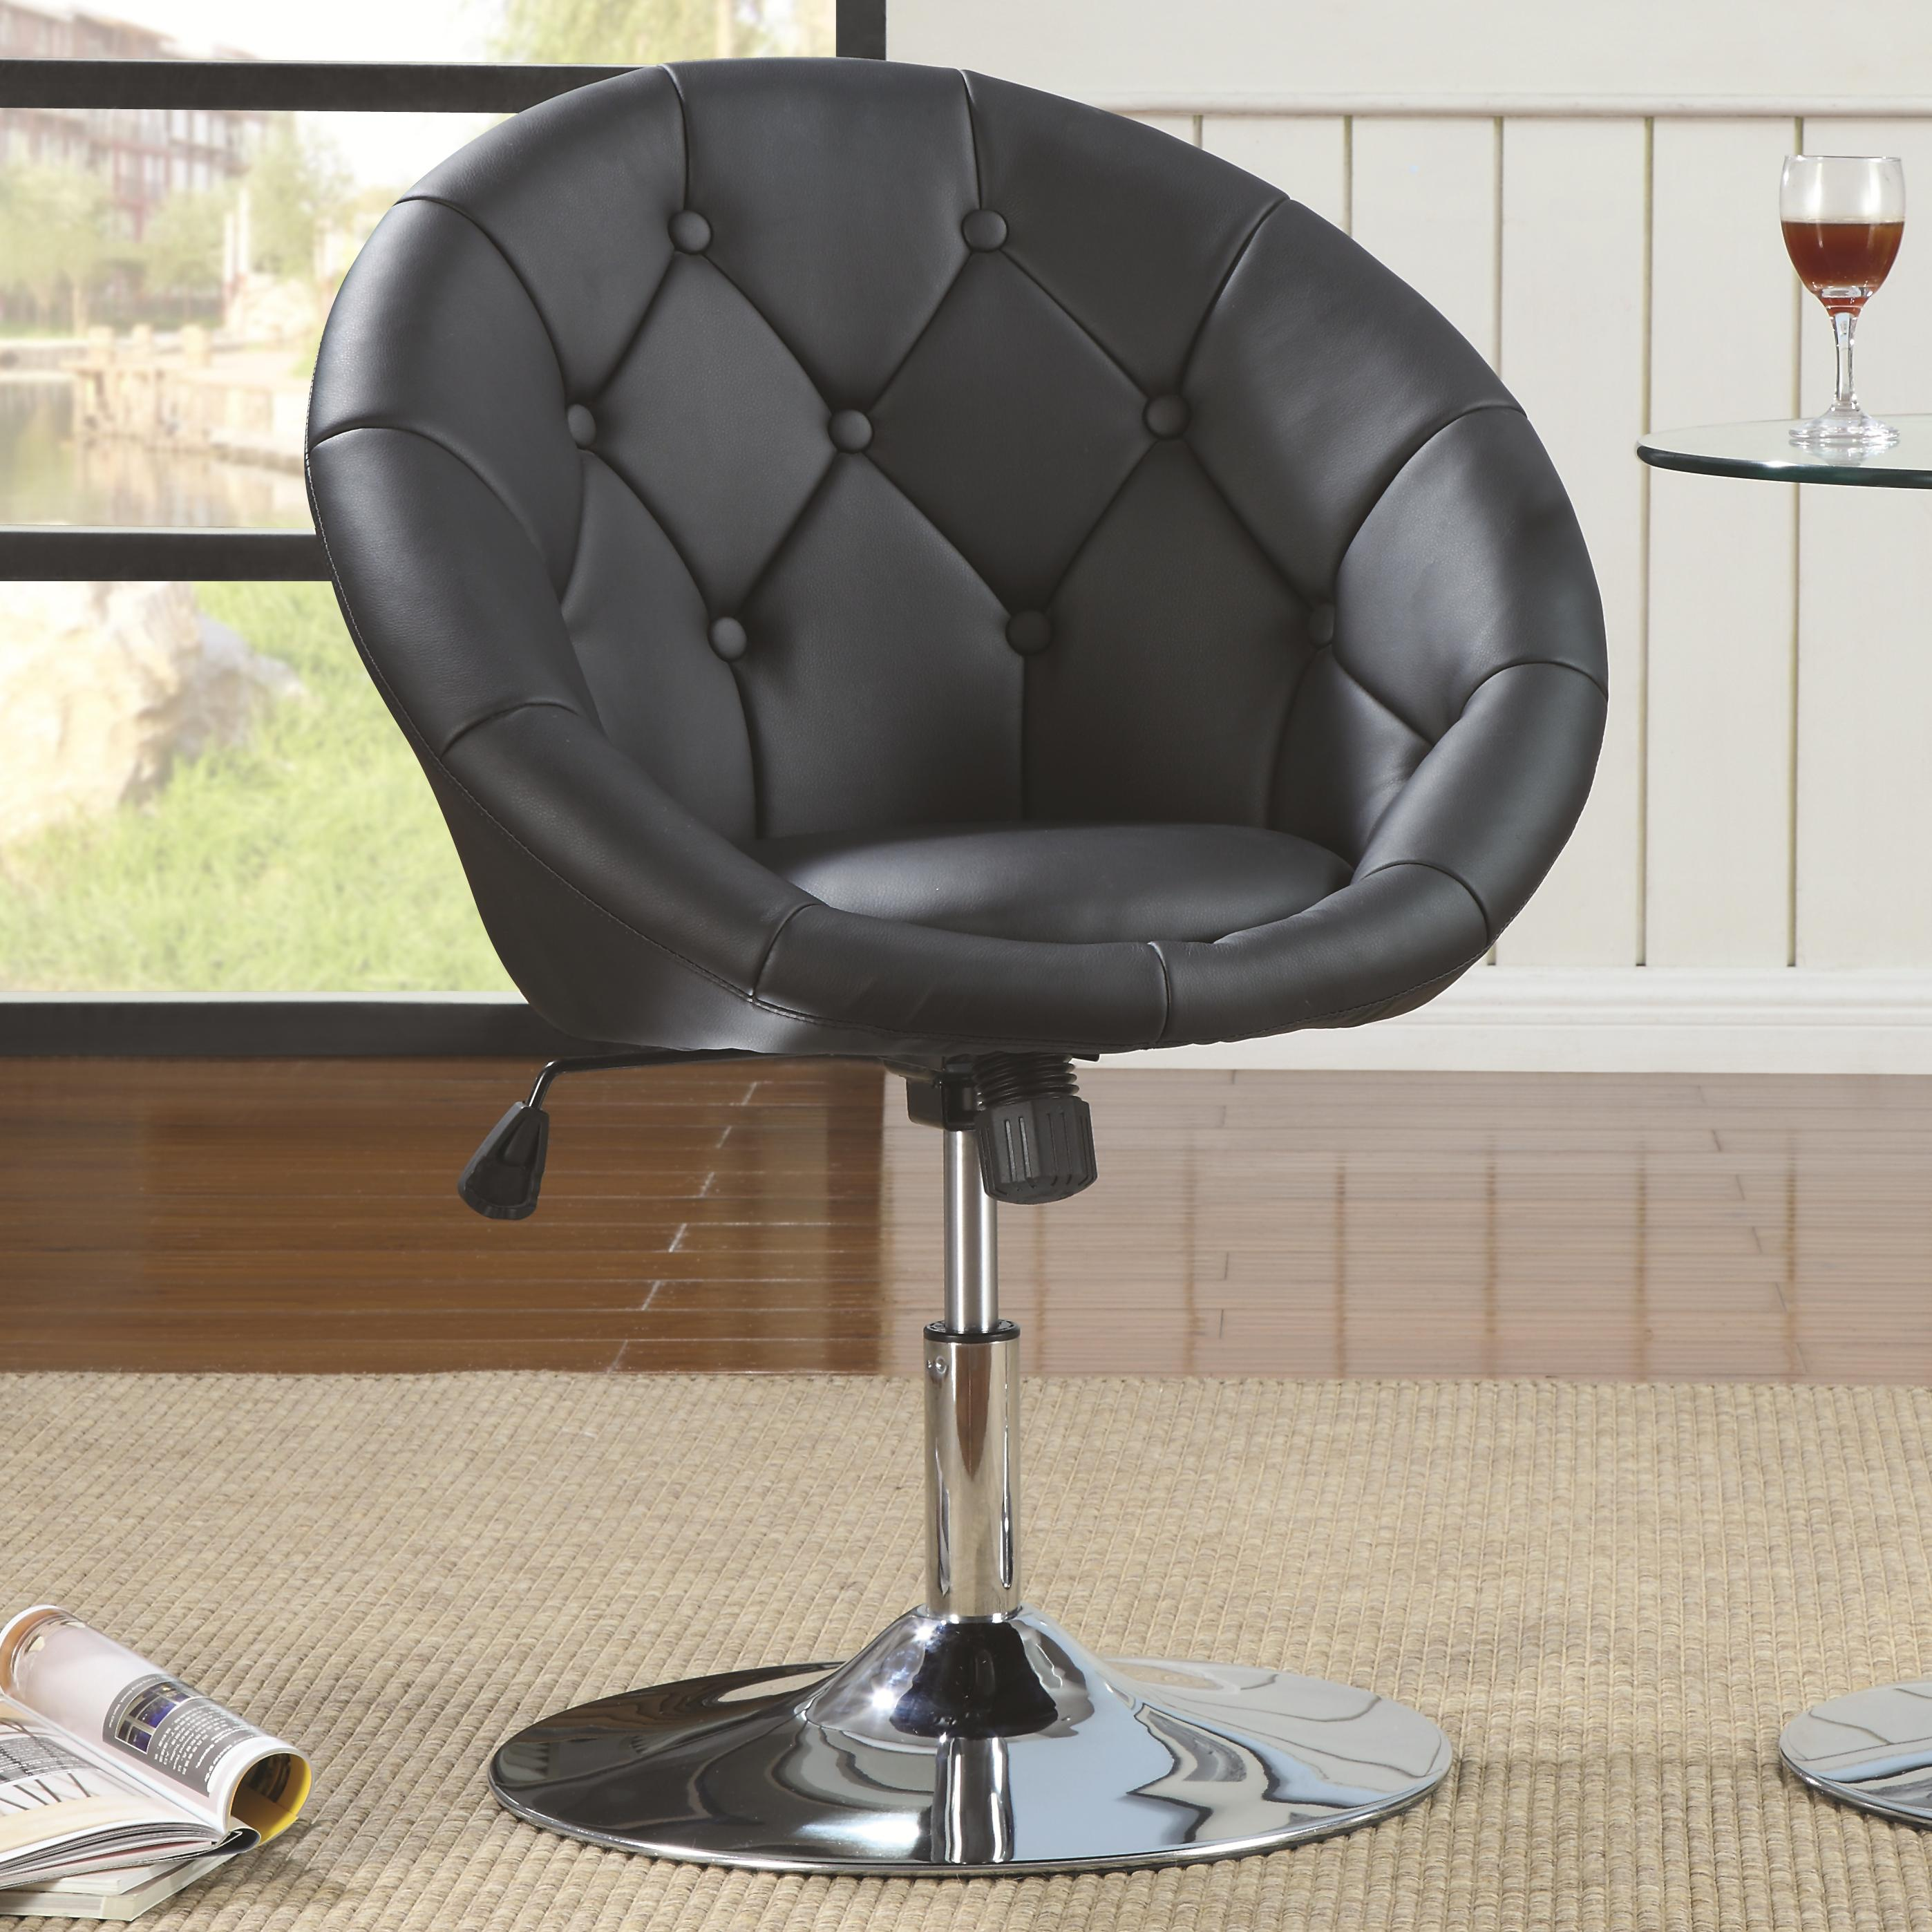 Coaster Dining Chairs and Bar Stools Swivel Chair (Black) - Item Number: 102580